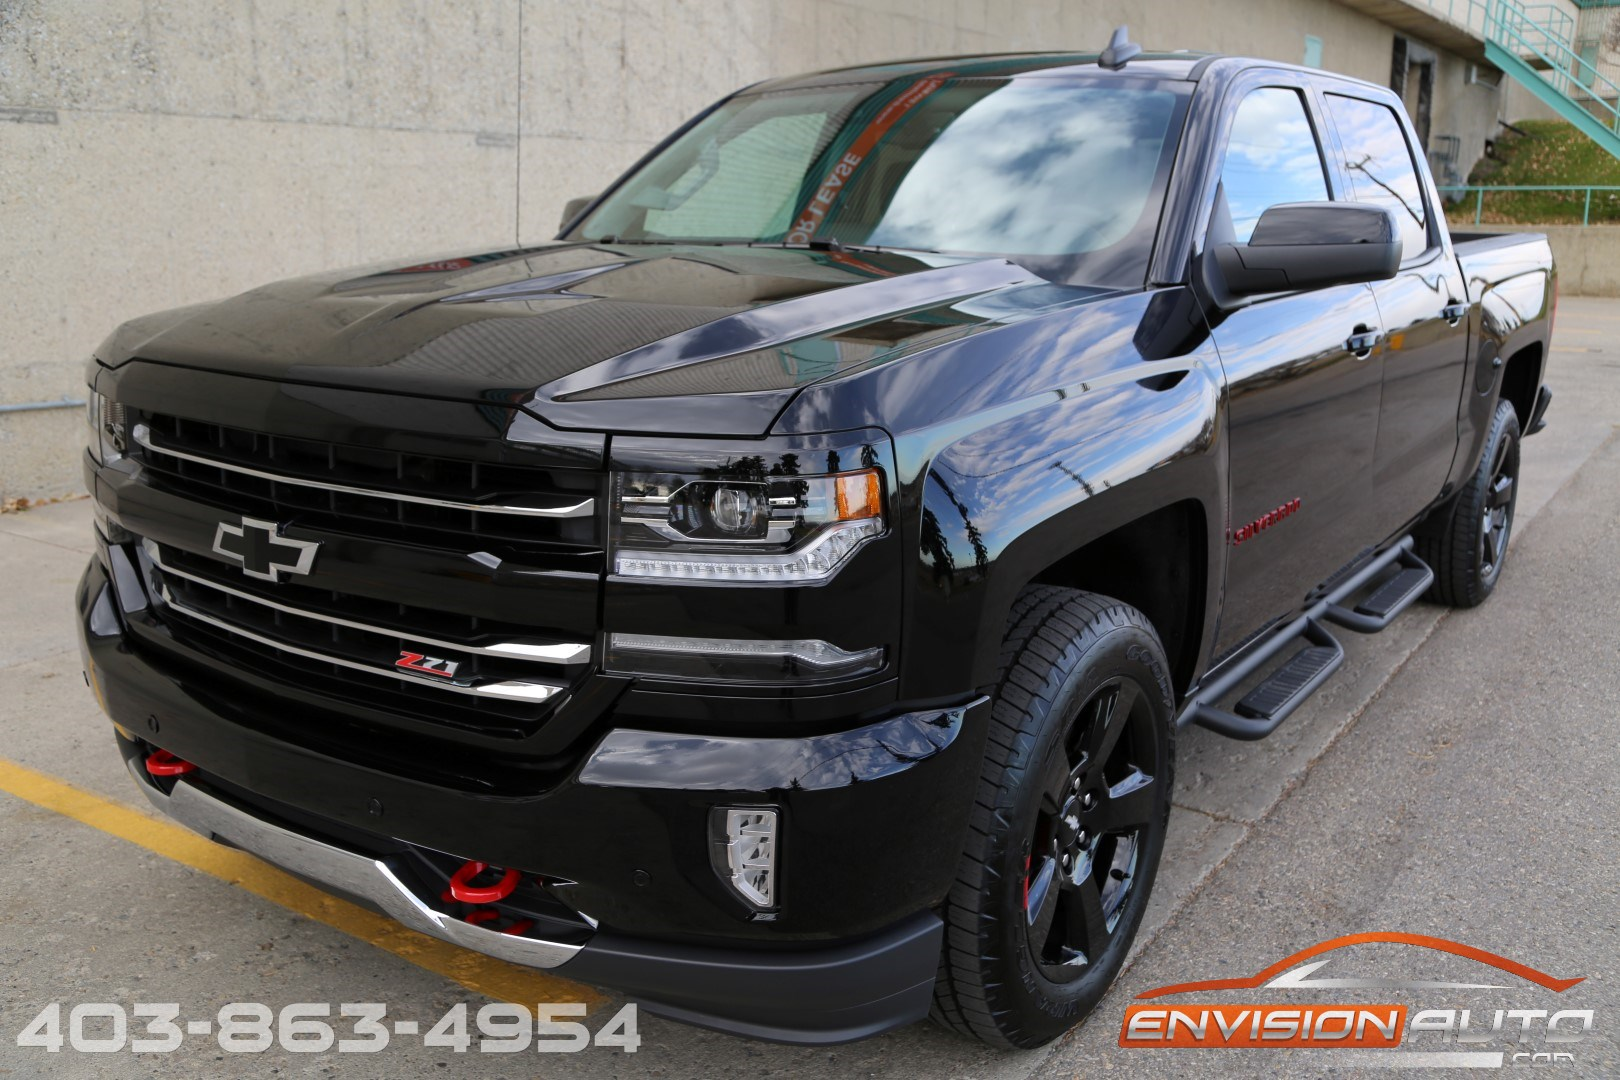 2017 chevrolet silverado 1500 ltz redline edition ltz plus 2lz z71 envision auto. Black Bedroom Furniture Sets. Home Design Ideas